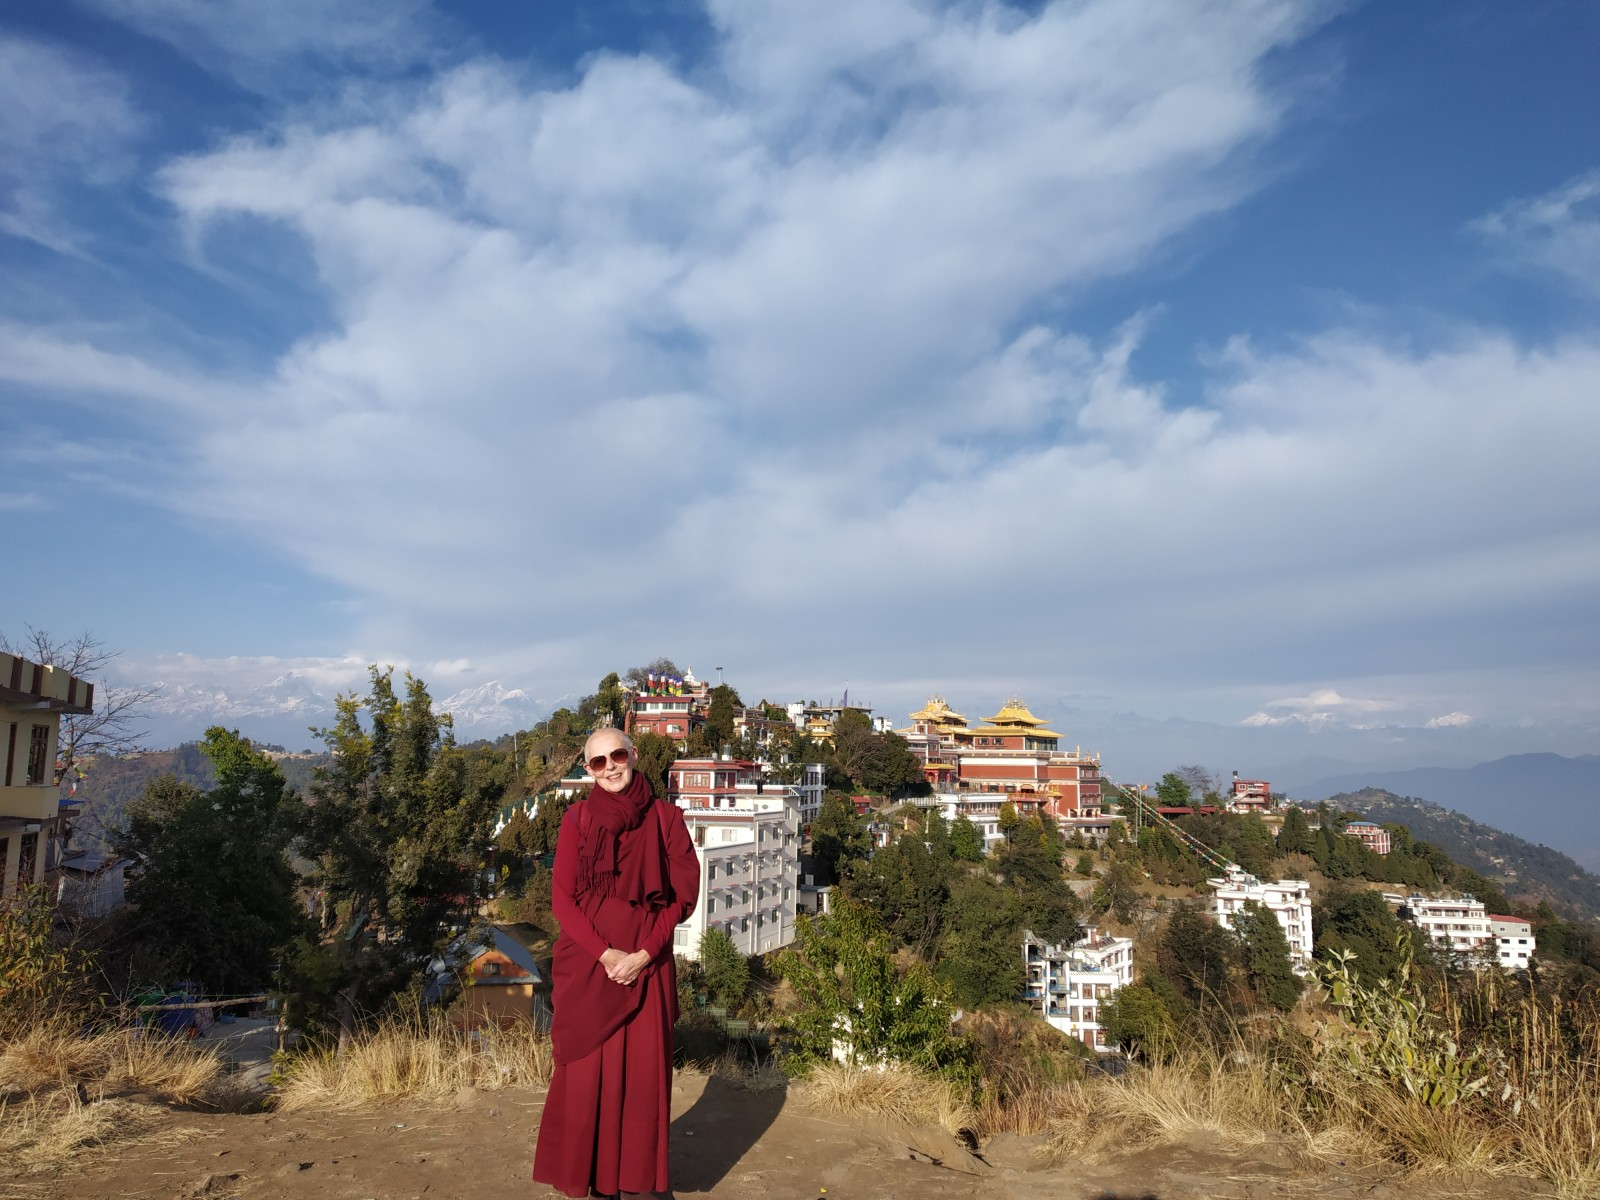 On the hill overlooking the whole complex of Thrangu Monastery at Namo Buddha